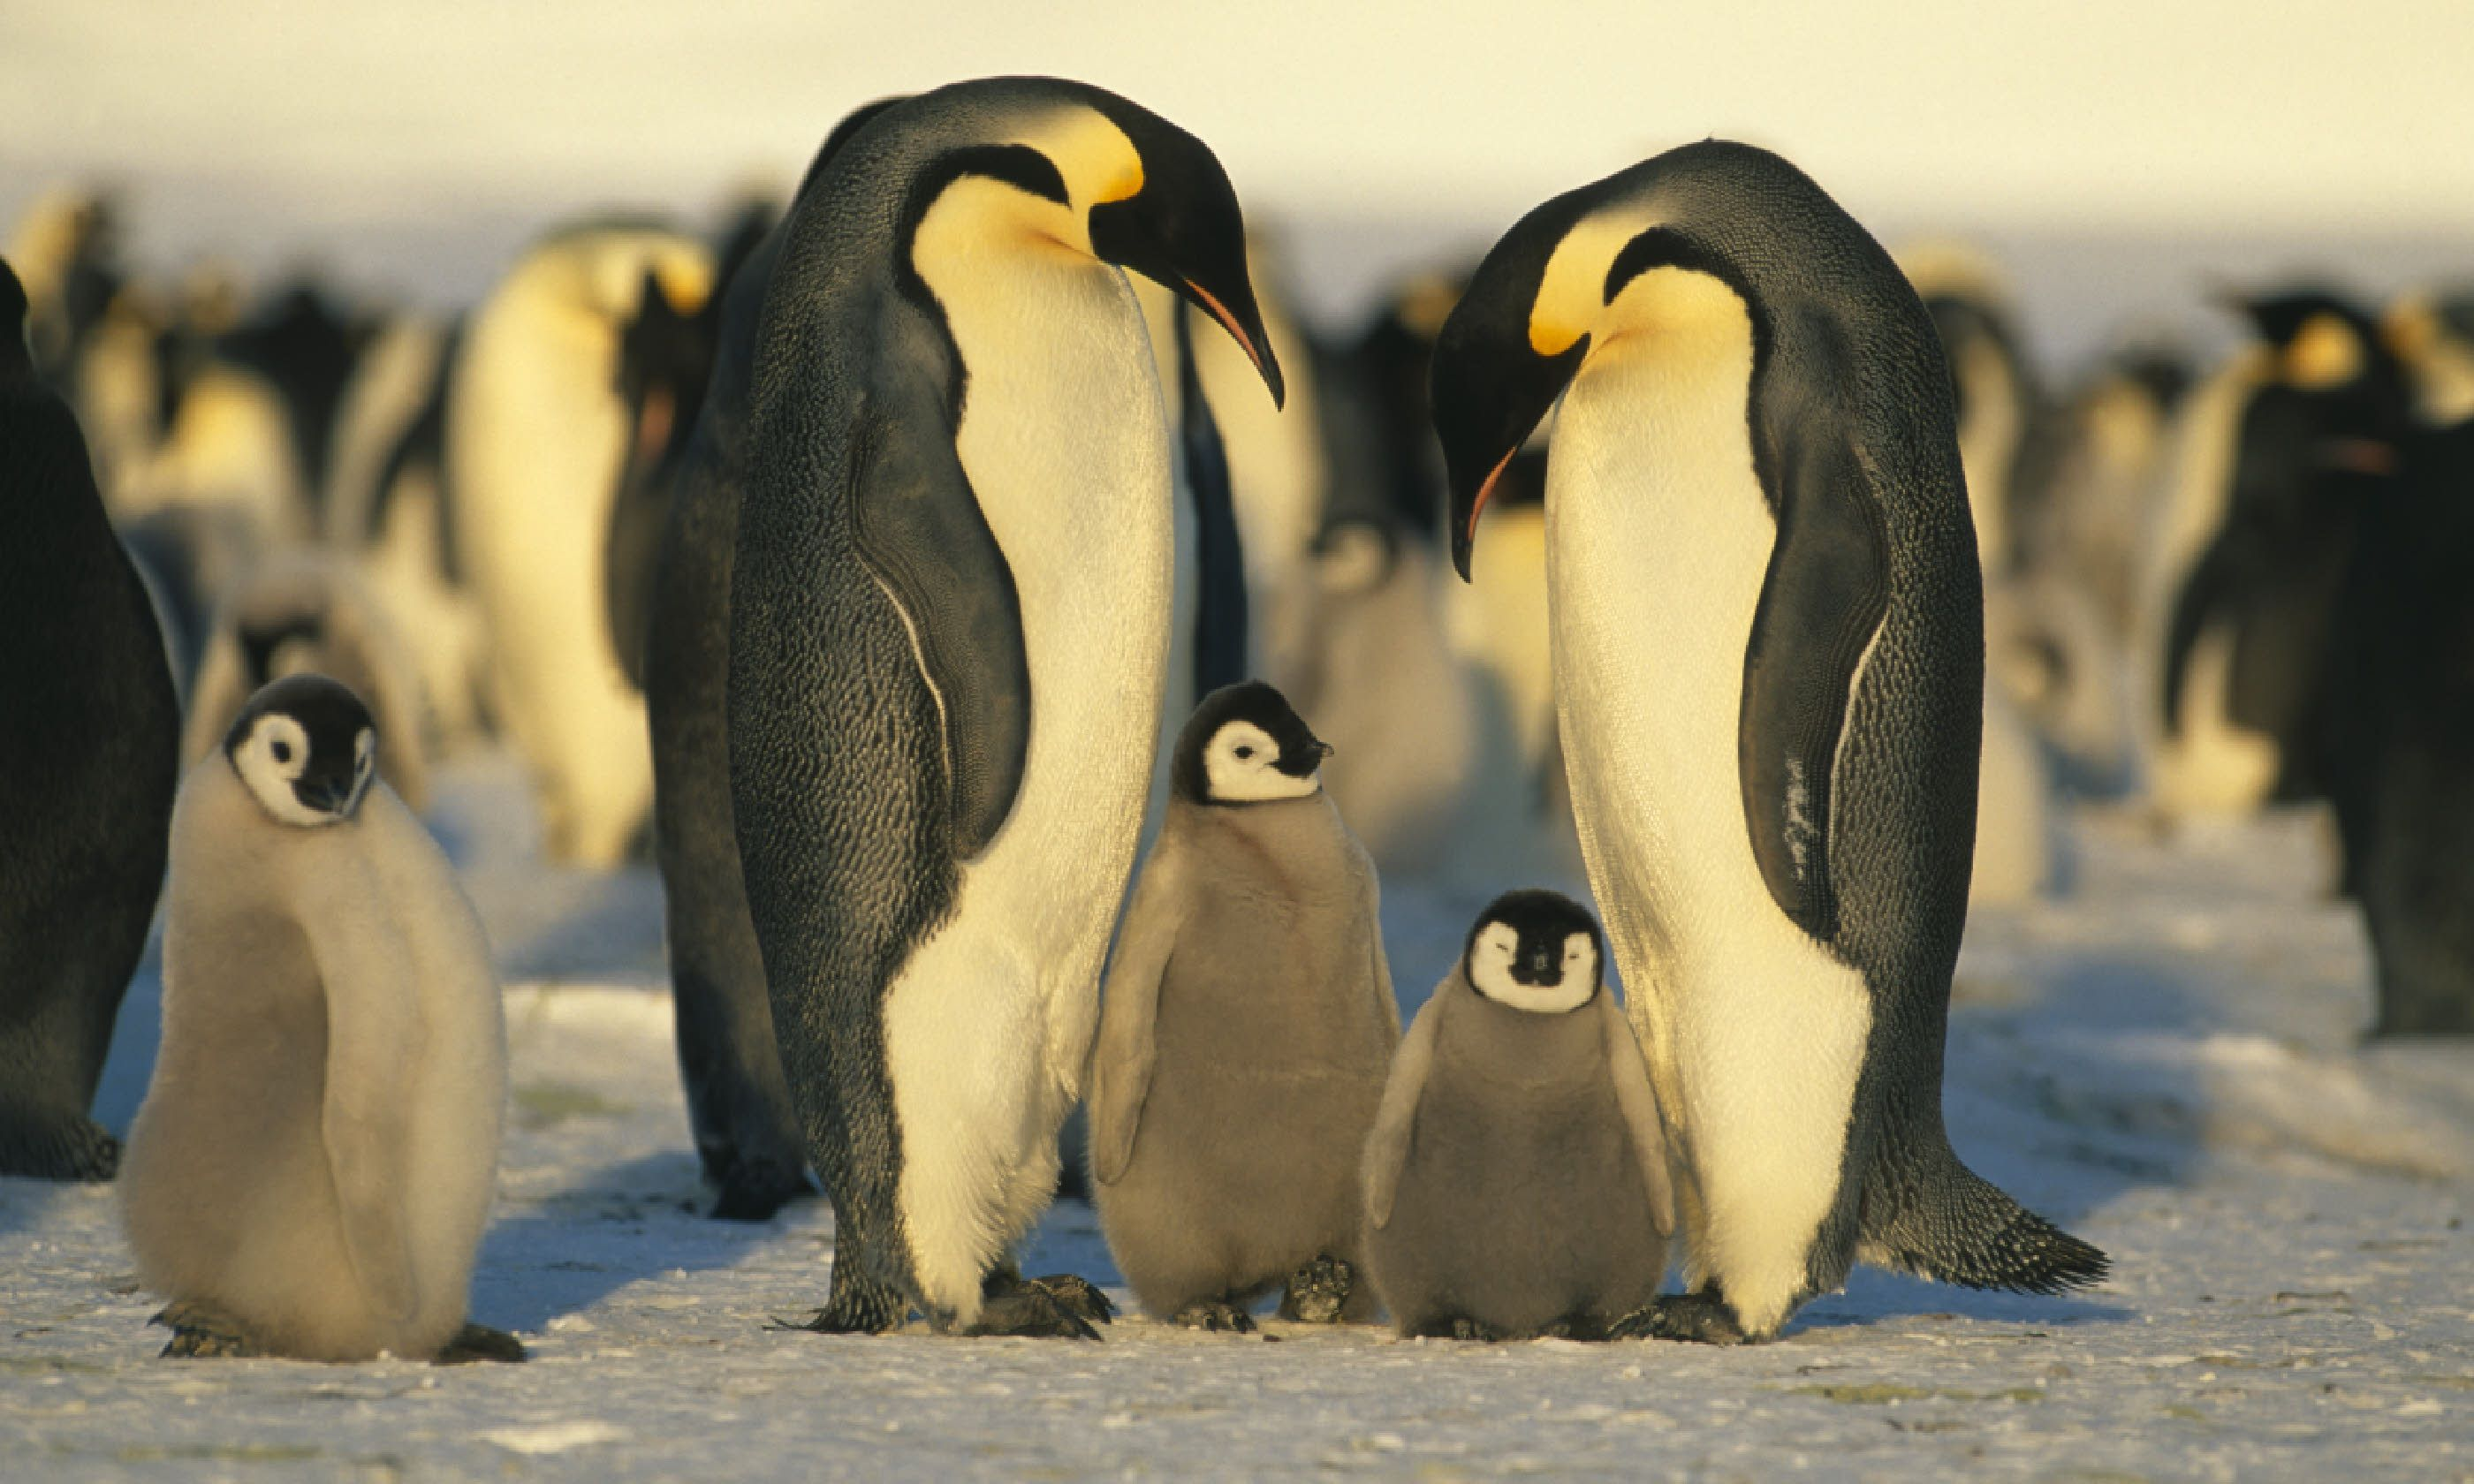 Emperor penguins with chicks (Shutterstock)